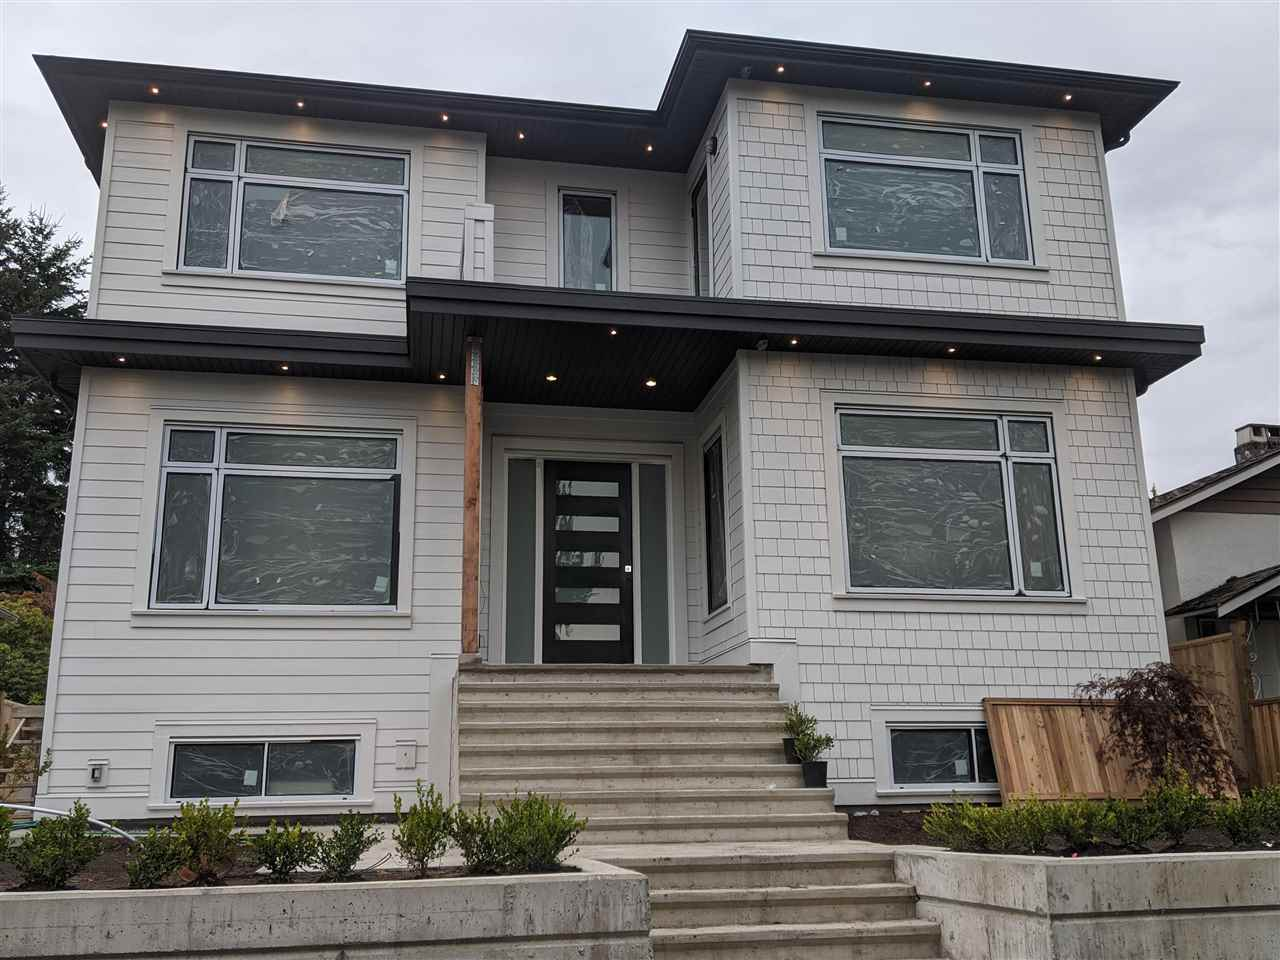 236 W 27TH STREET - Upper Lonsdale House/Single Family for sale, 7 Bedrooms (R2481079) - #1